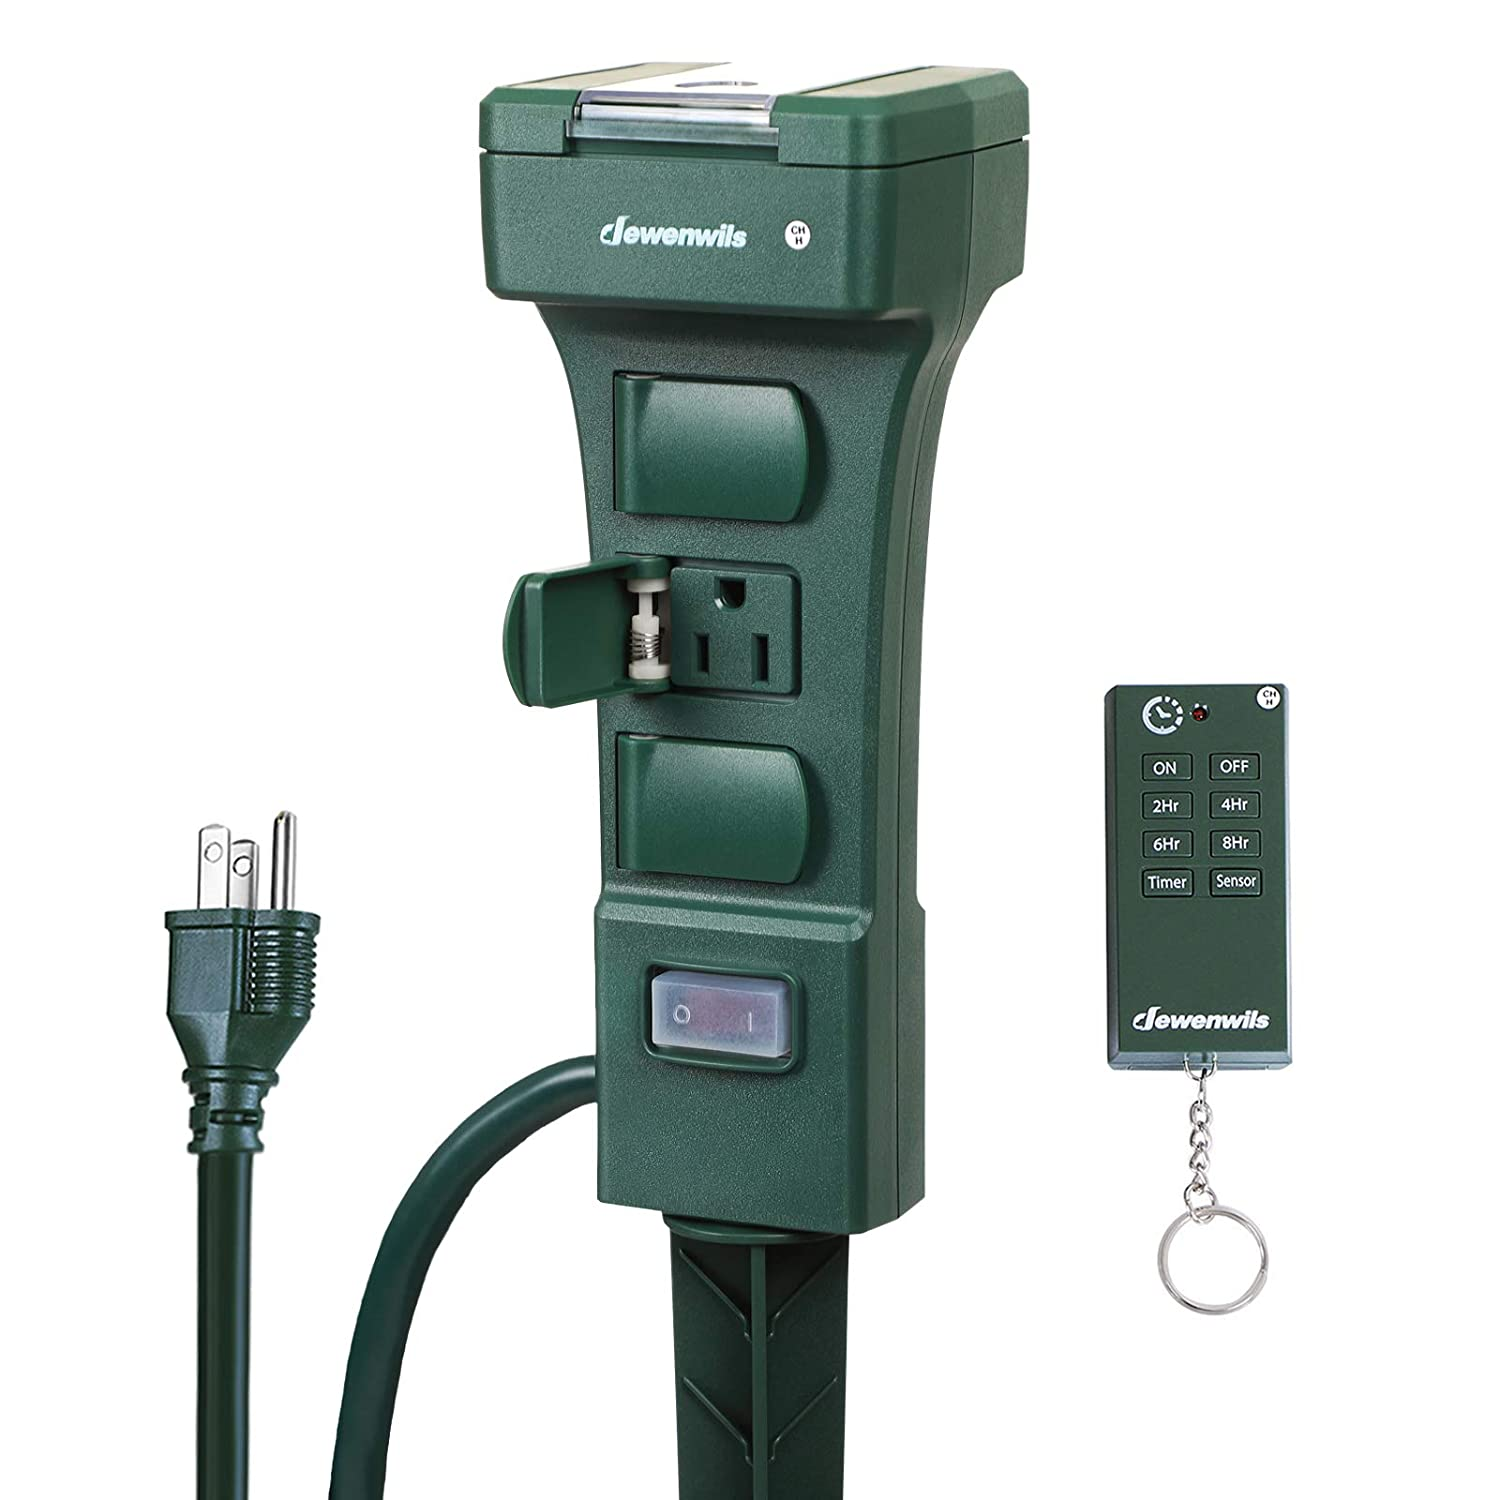 DEWENWILS Outdoor Power Stake Timer, Waterproof Power Strip Timer Switch with Photocell Light Sensor, 6 Grounded Outlets, 6 ft Extension Cord, 100 Ft Remote Control, 15A 1/2HP UL Listed